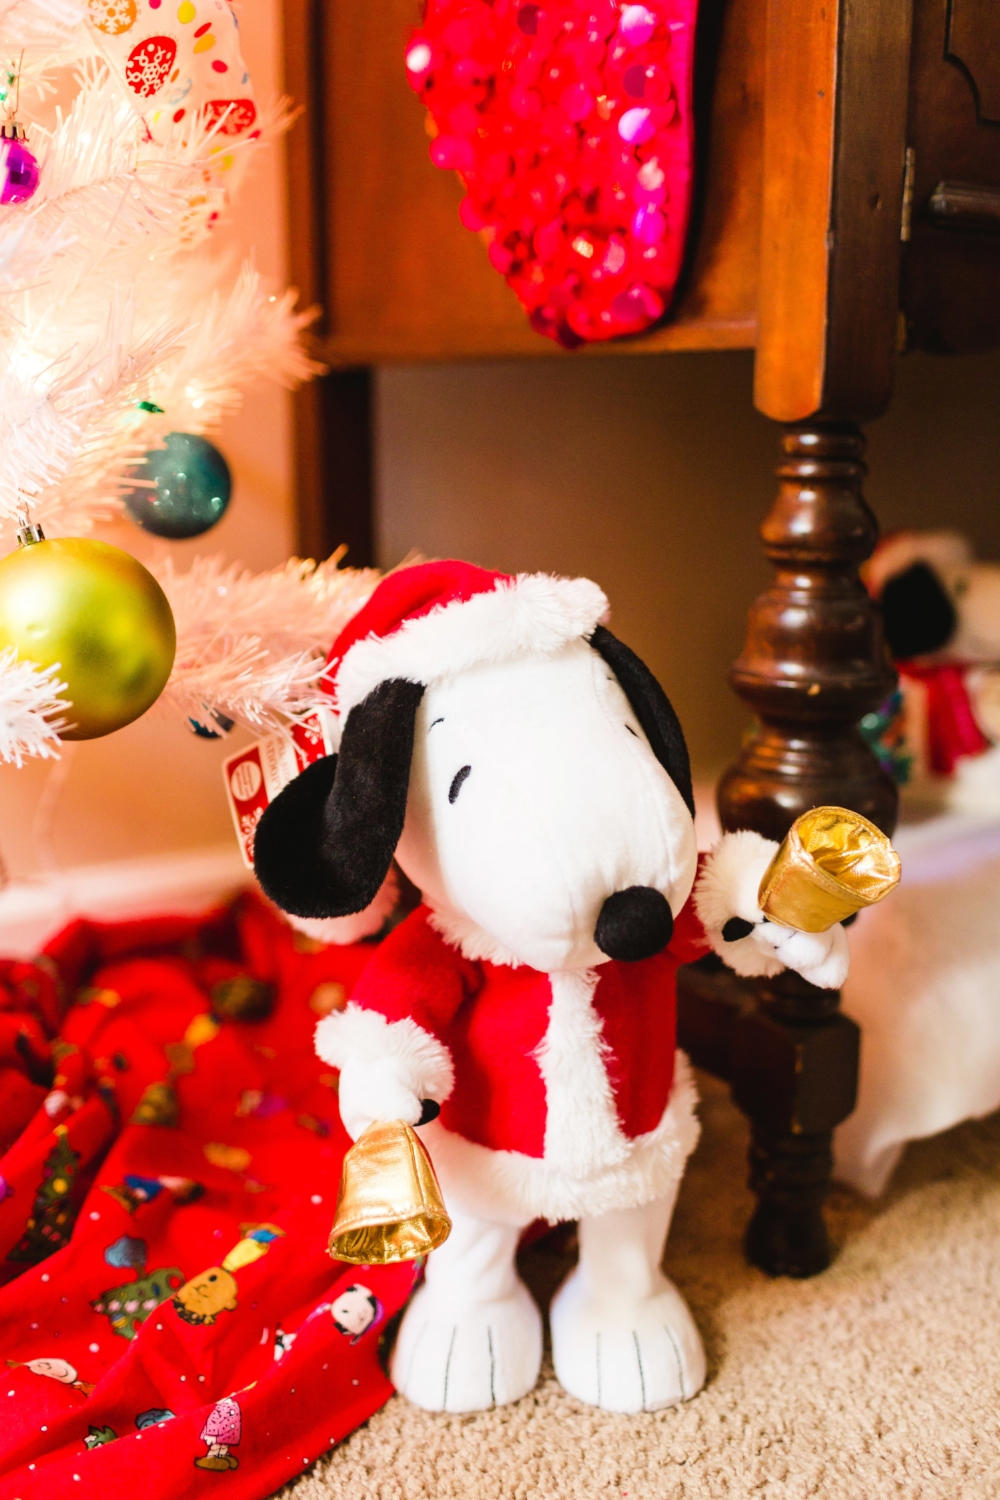 I love Charlie Brown and a few of the Hallmark stuffed animals I have are from Peanuts. I had previously used Peanuts fabric as a tree skirt and since I went in a new direction this year with the traditional tree, the Peanuts ornaments and tree skirt were moved to Bella's tree.